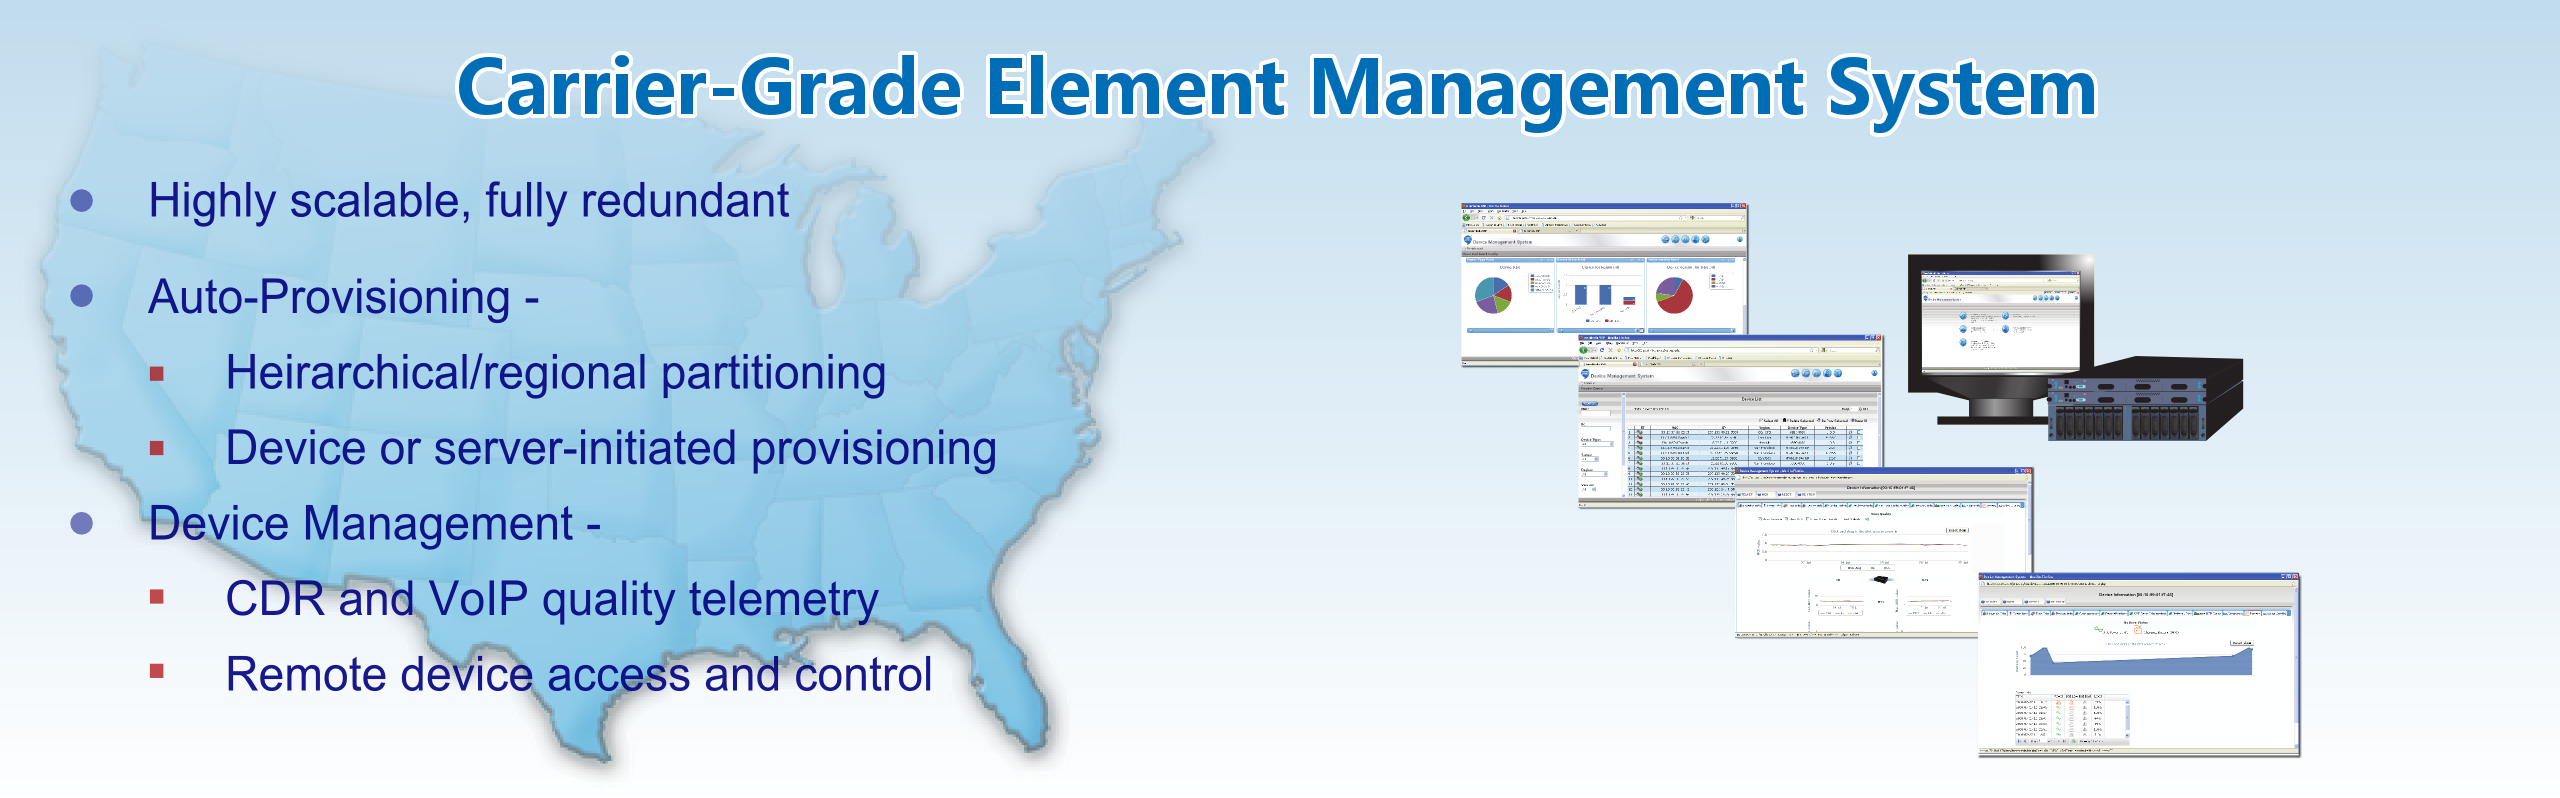 Carrier-Grade Element Management System